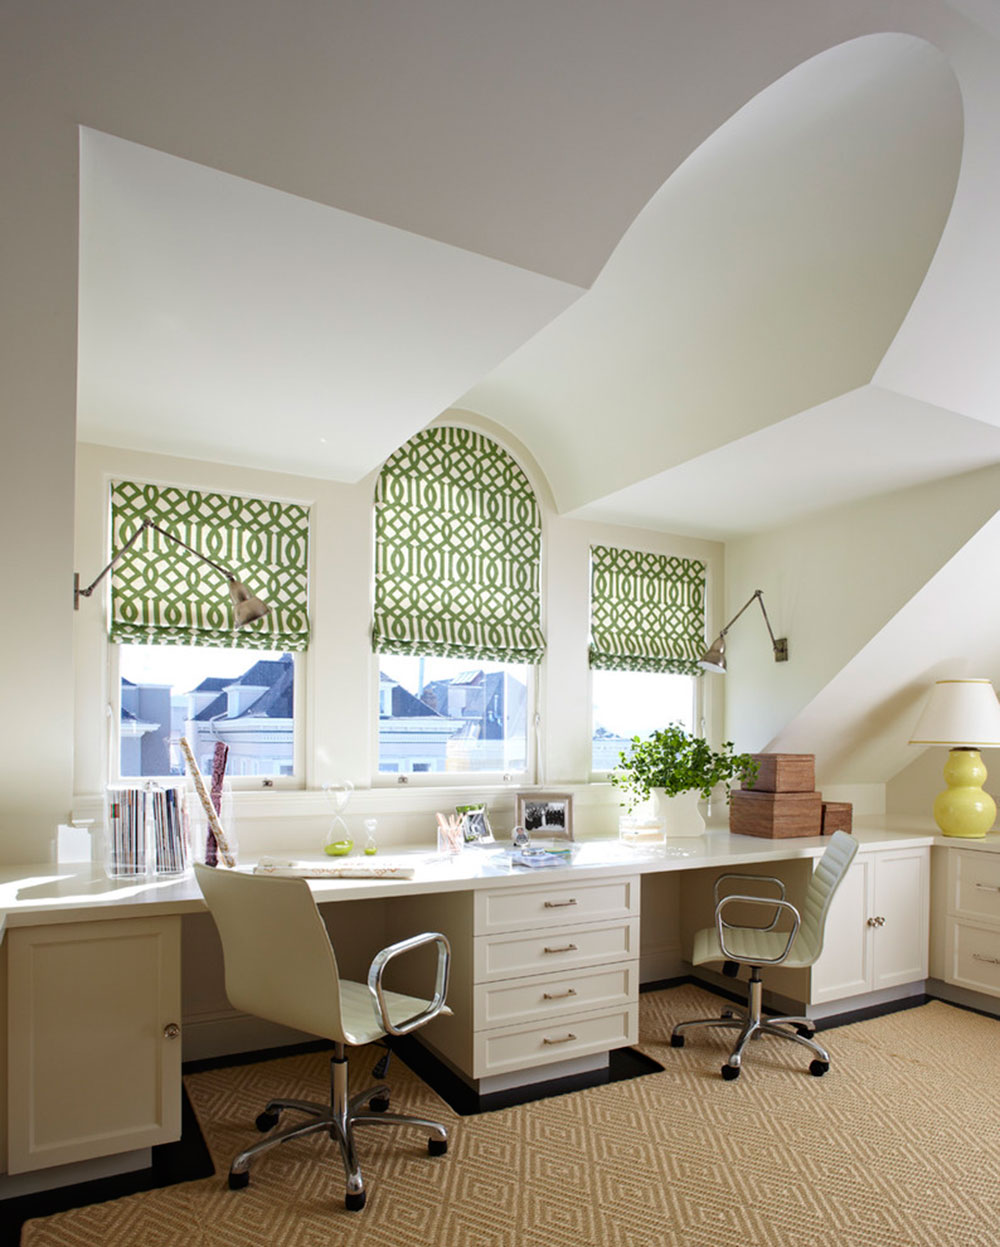 Two-person-desk-design-ideas-and-solutions-for-you16 two-person-desk-design-ideas-and-solutions-for-you